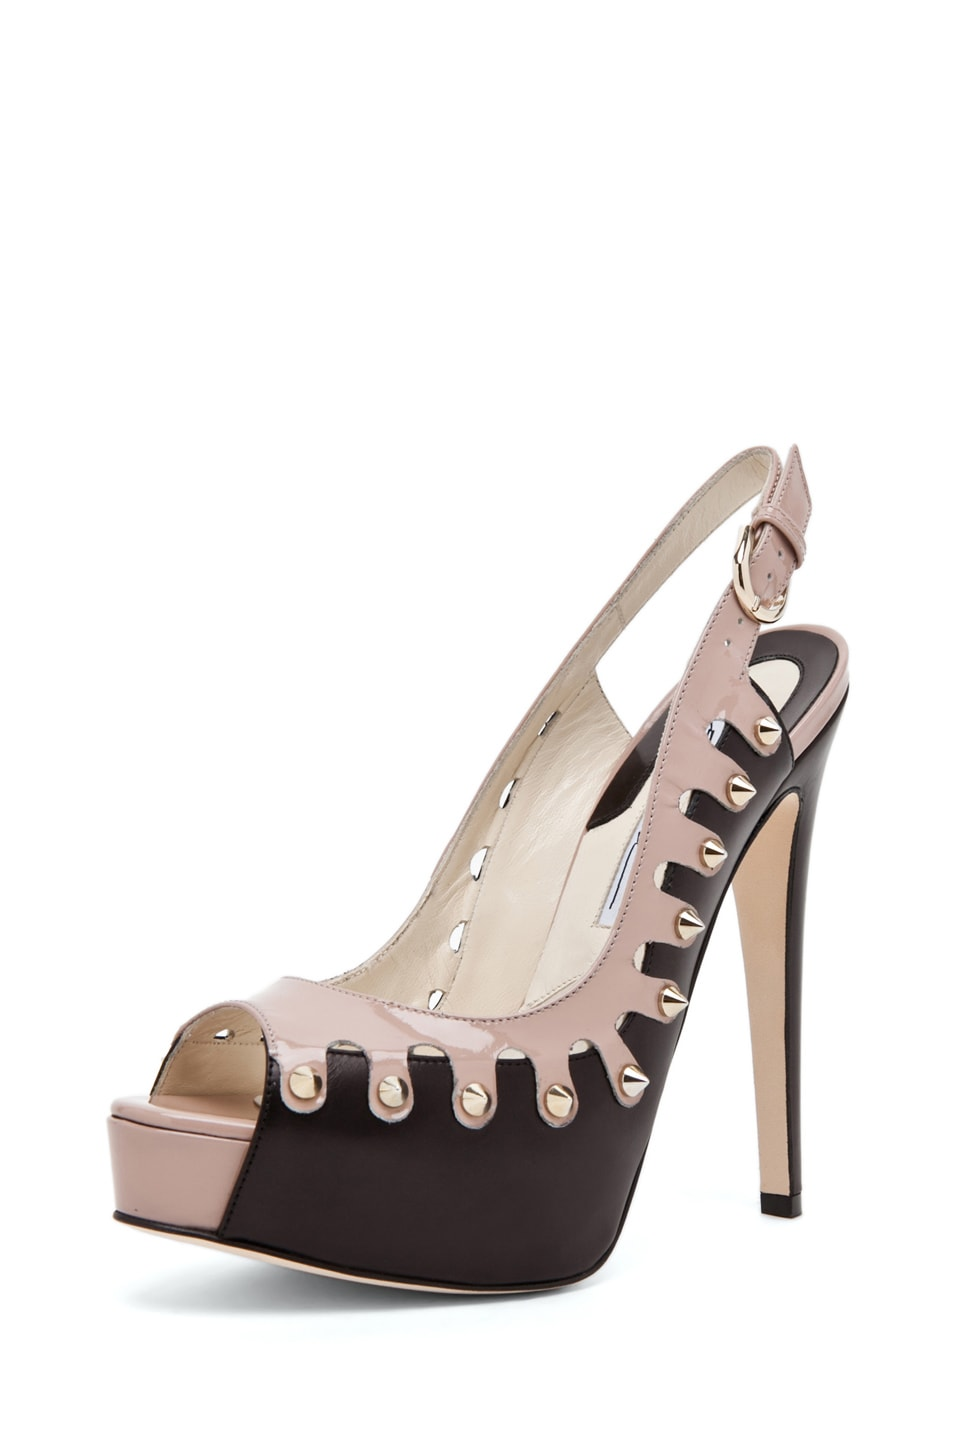 Image 2 of Brian Atwood Neela in Black/Cappuccino Nude